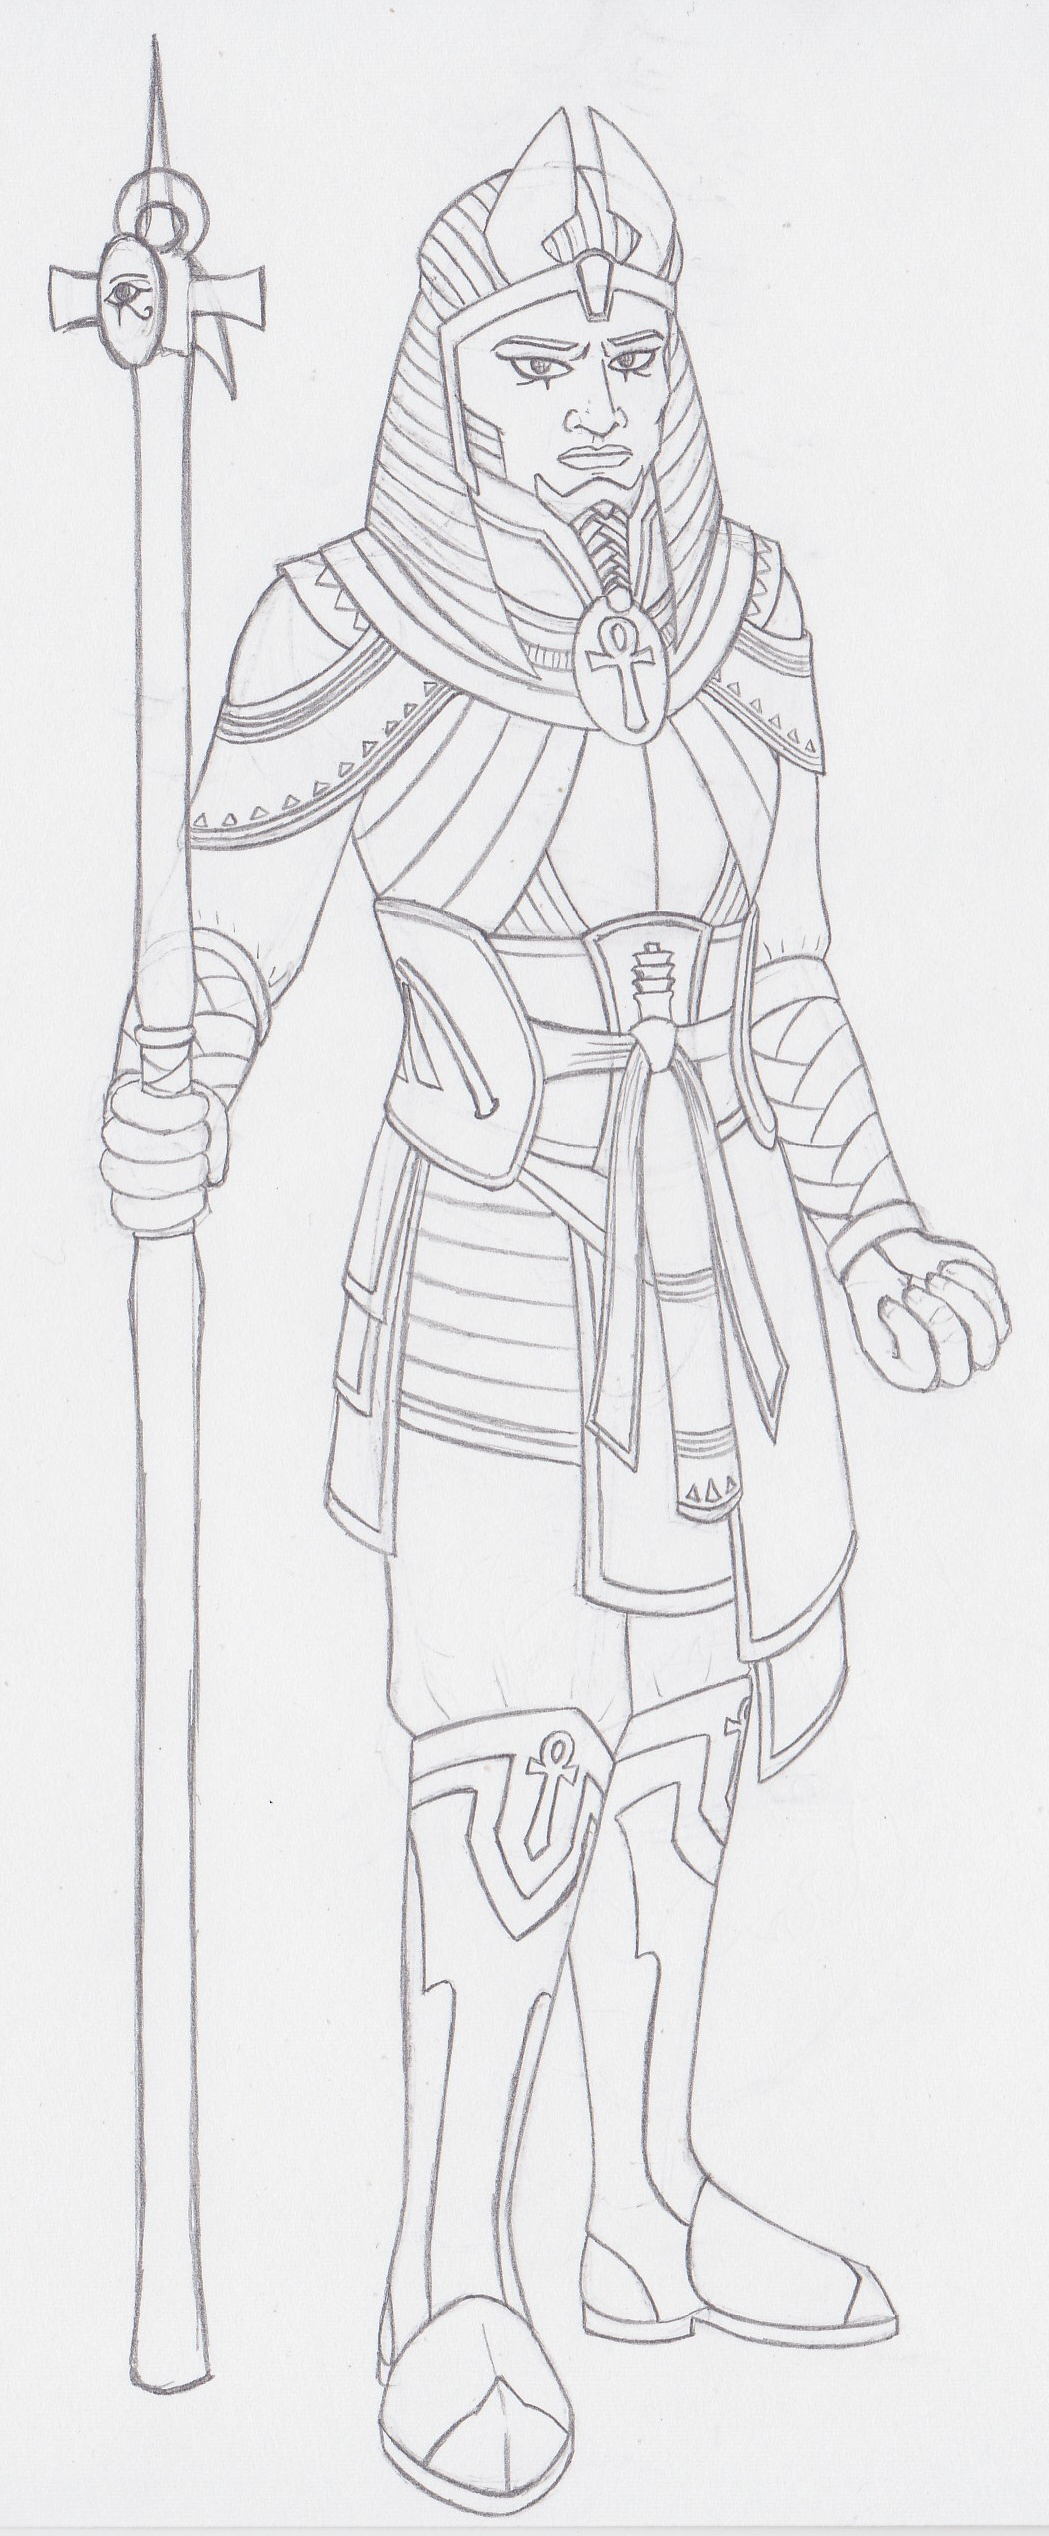 A somewhat rough sketch of my Lvl 17 Oracle/Paladin/Holy Vindicator Anen the Peace Giver, hero of Osirion and slayer of undead pharaohs across the ages